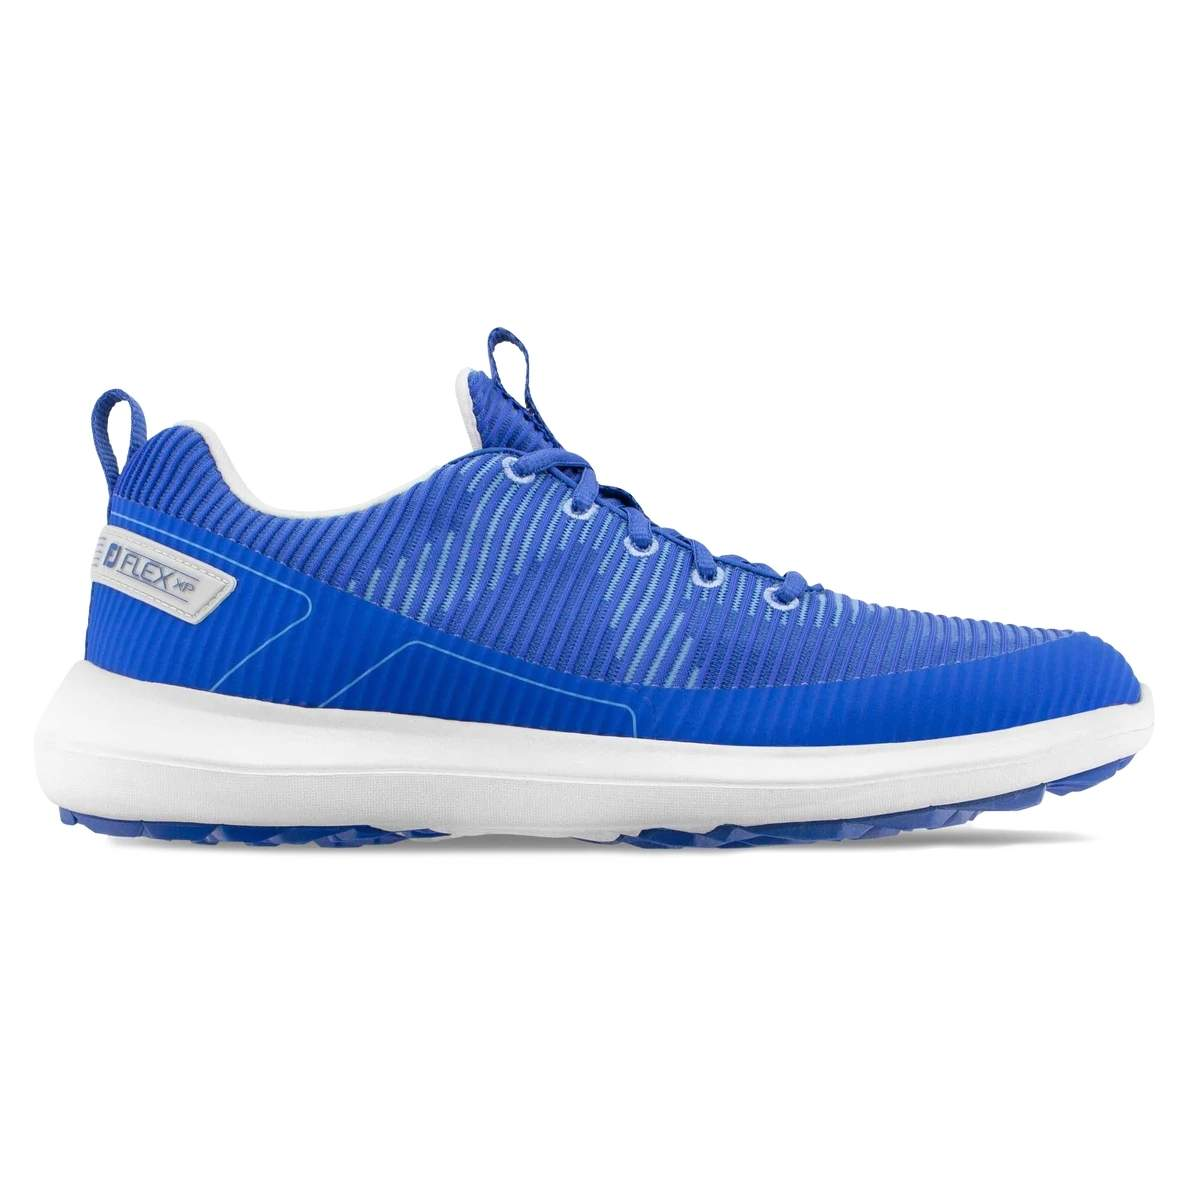 FootJoy Men's Flex XP Blue Golf Shoe - Style 56252